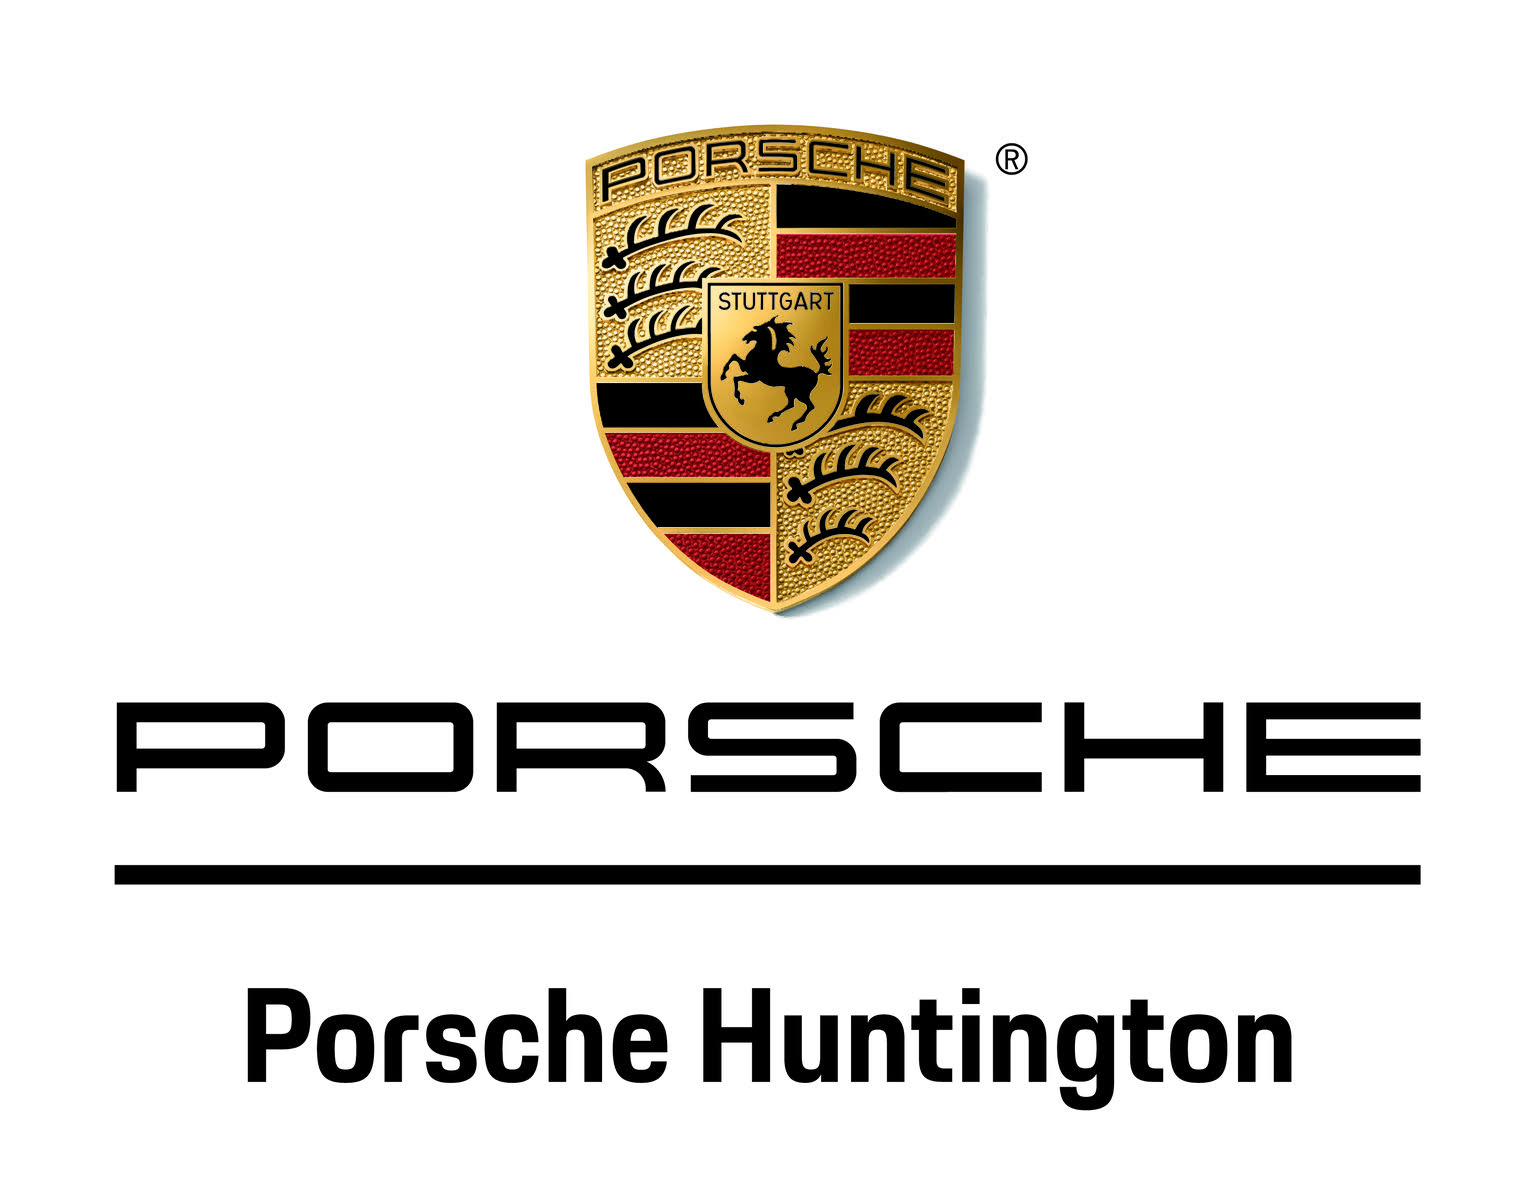 porsche huntington - huntington station, ny: read consumer reviews